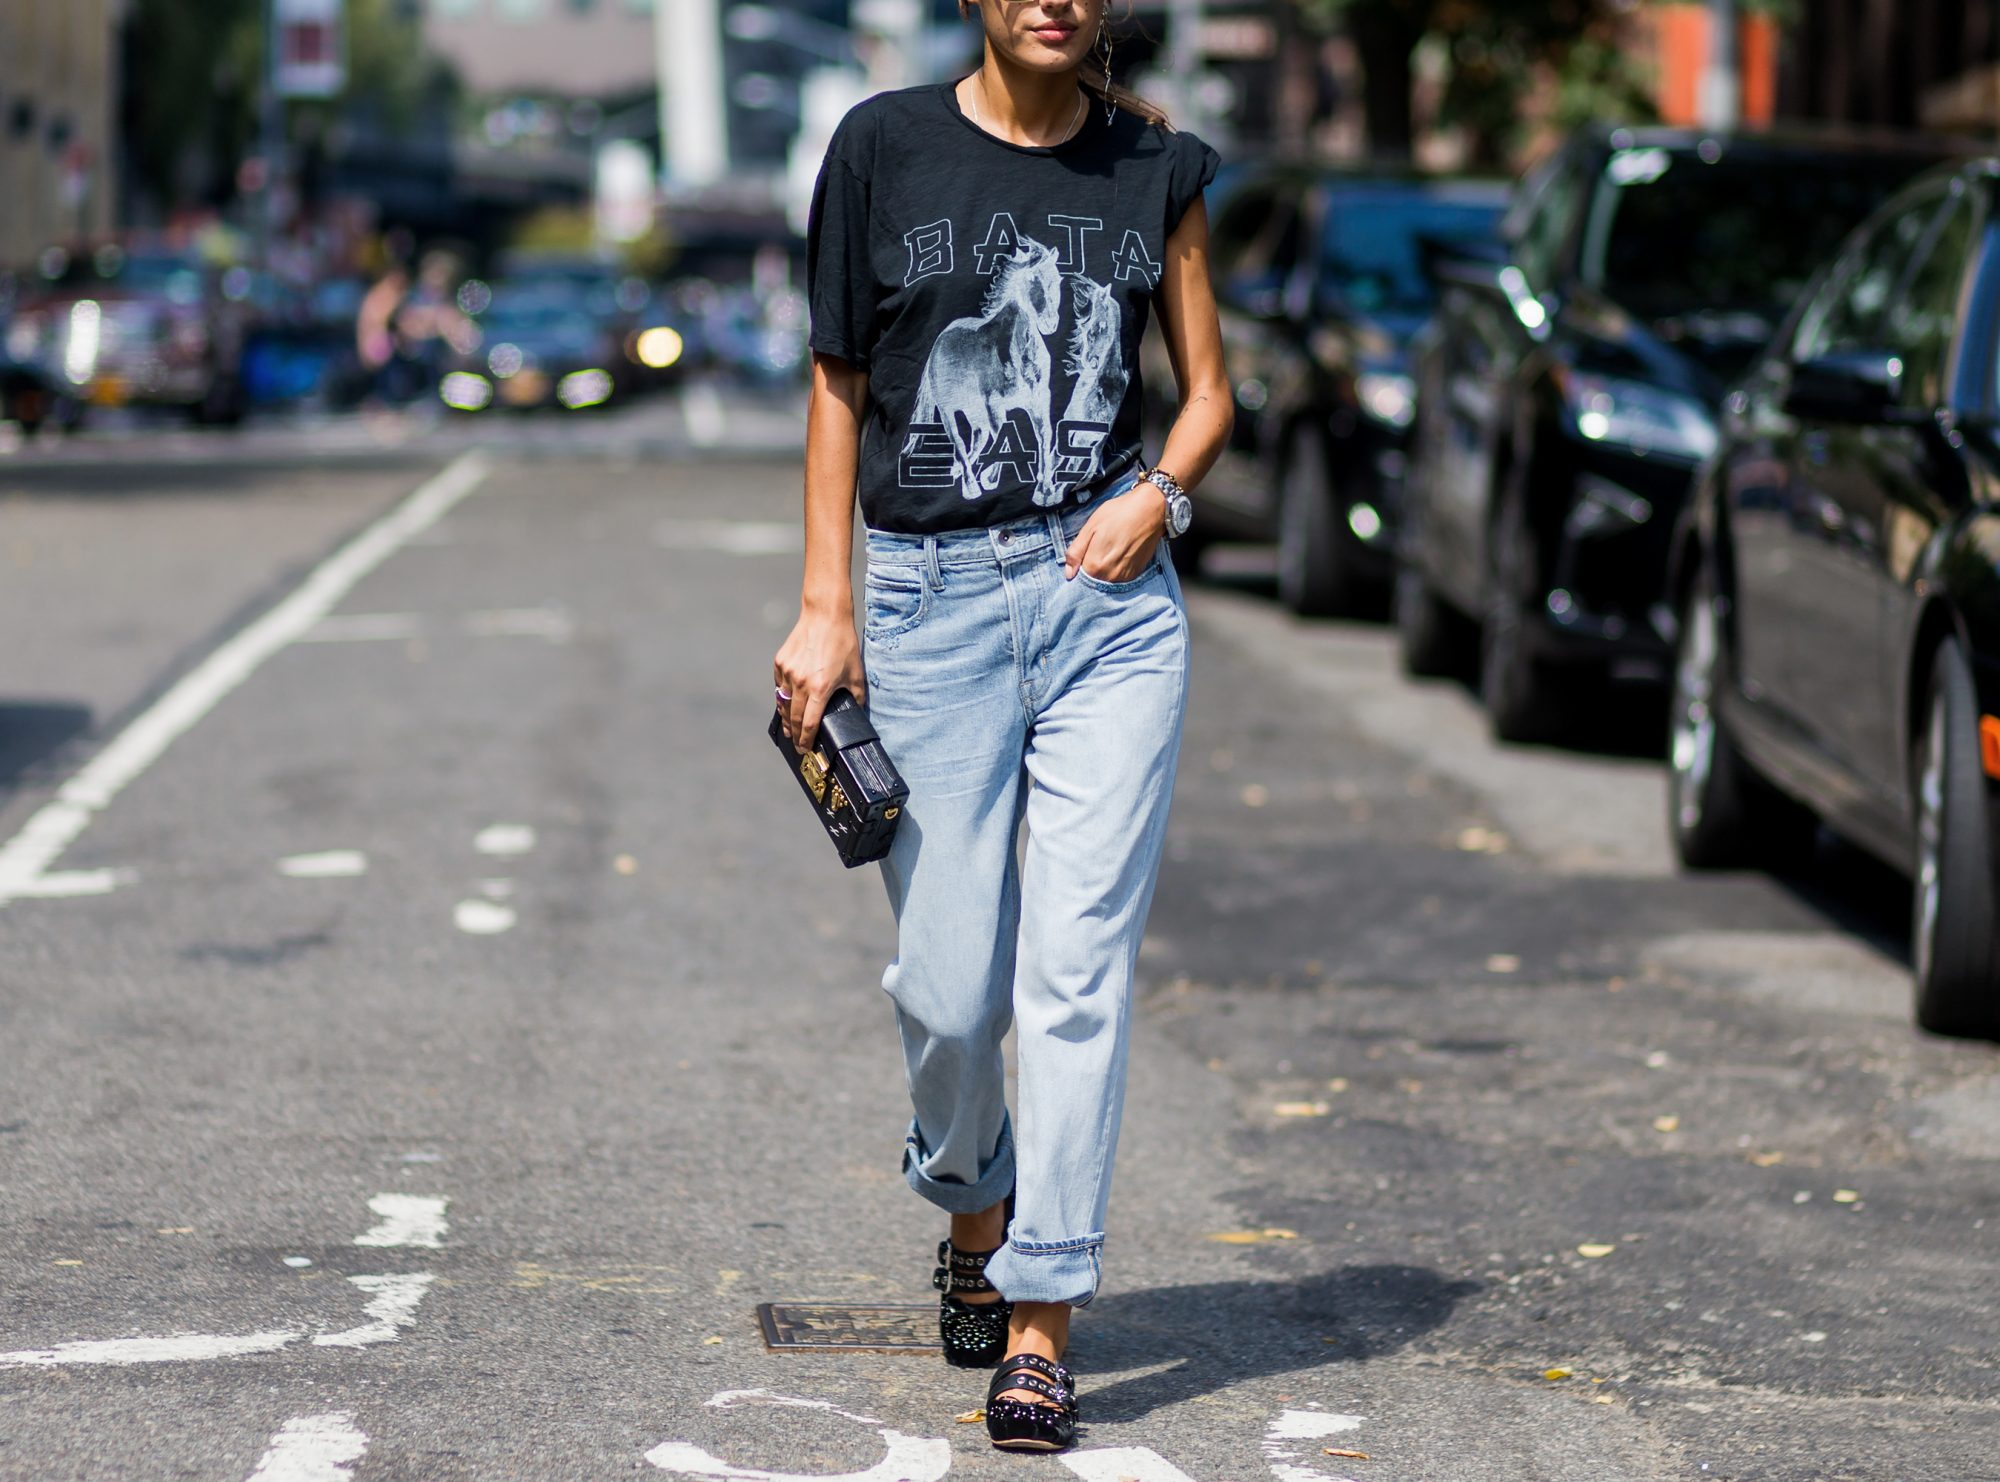 A T-shirt and jeans are perfect for fall festivals